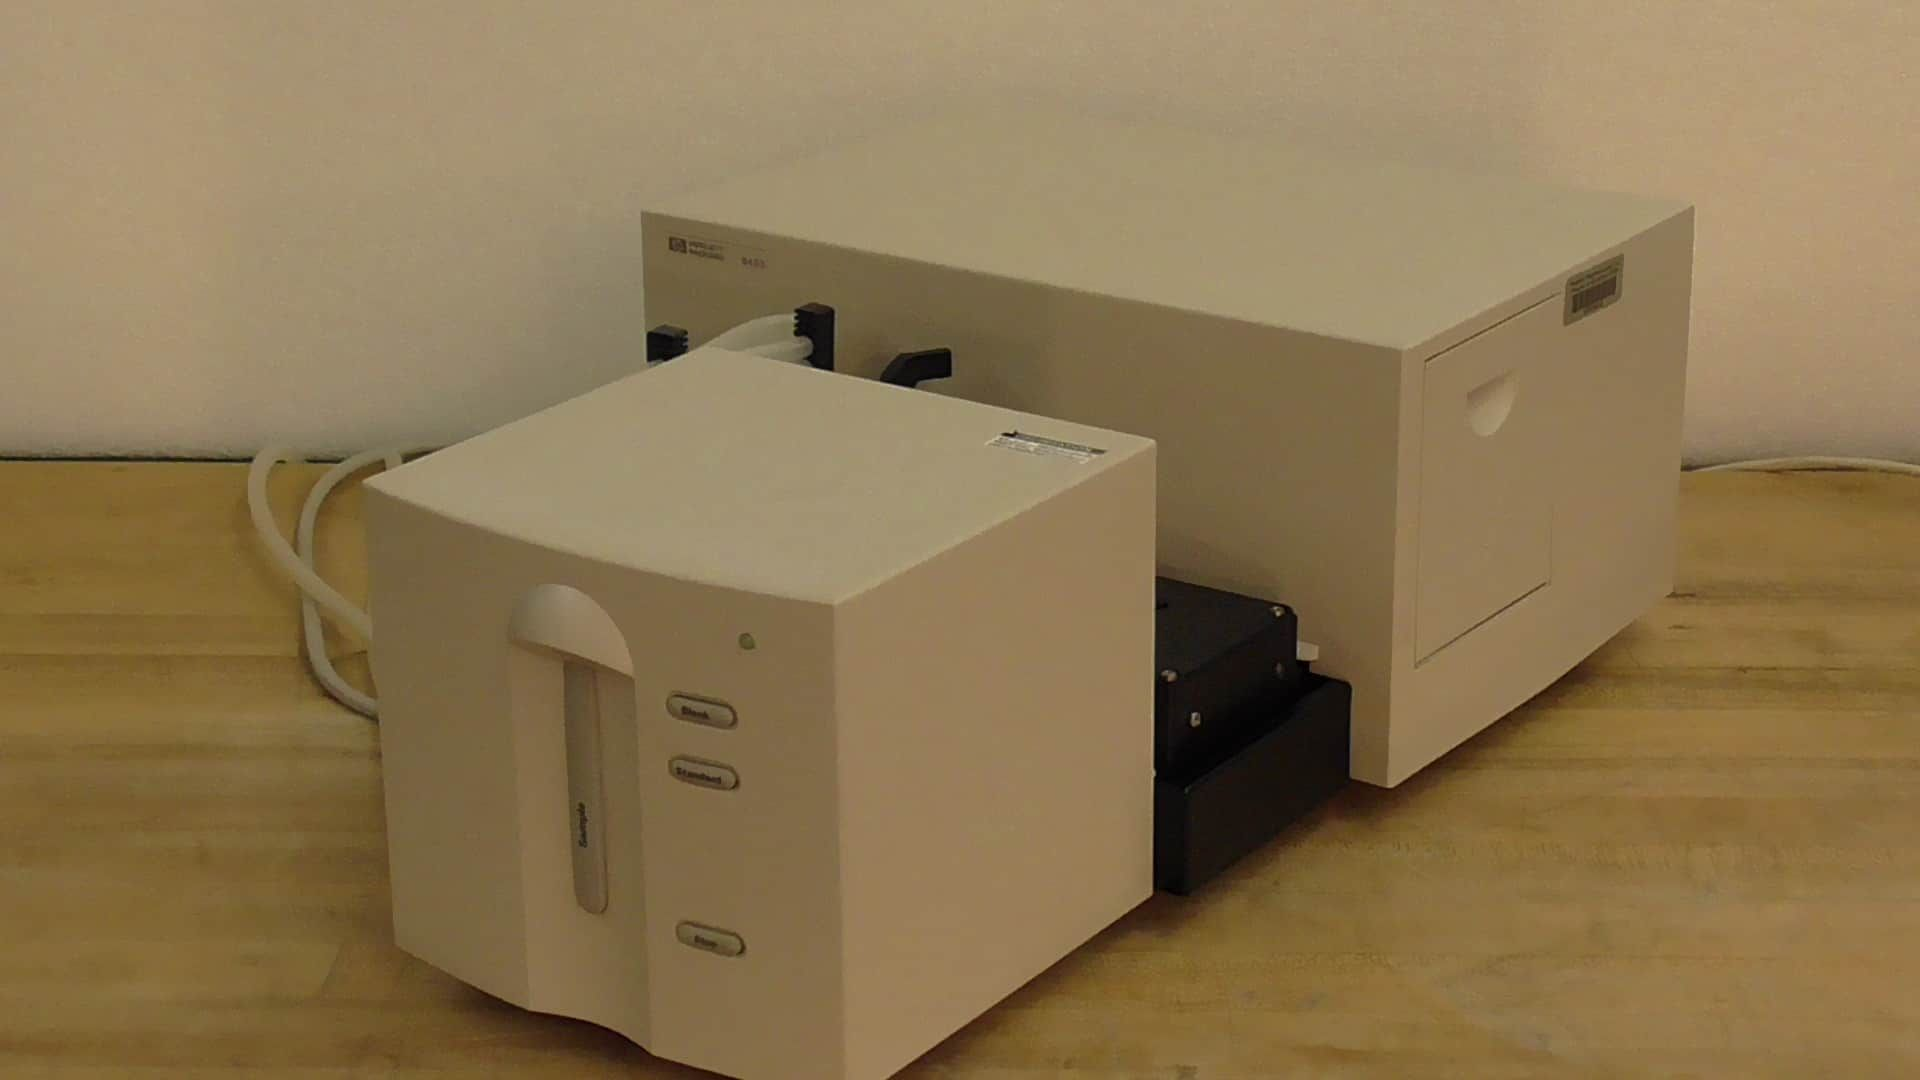 Agilent Technologies 8453 7 Cuvette UV Vis Spectrophotometer with Software Loaded PC, Monitor, Keyboard and Mouse